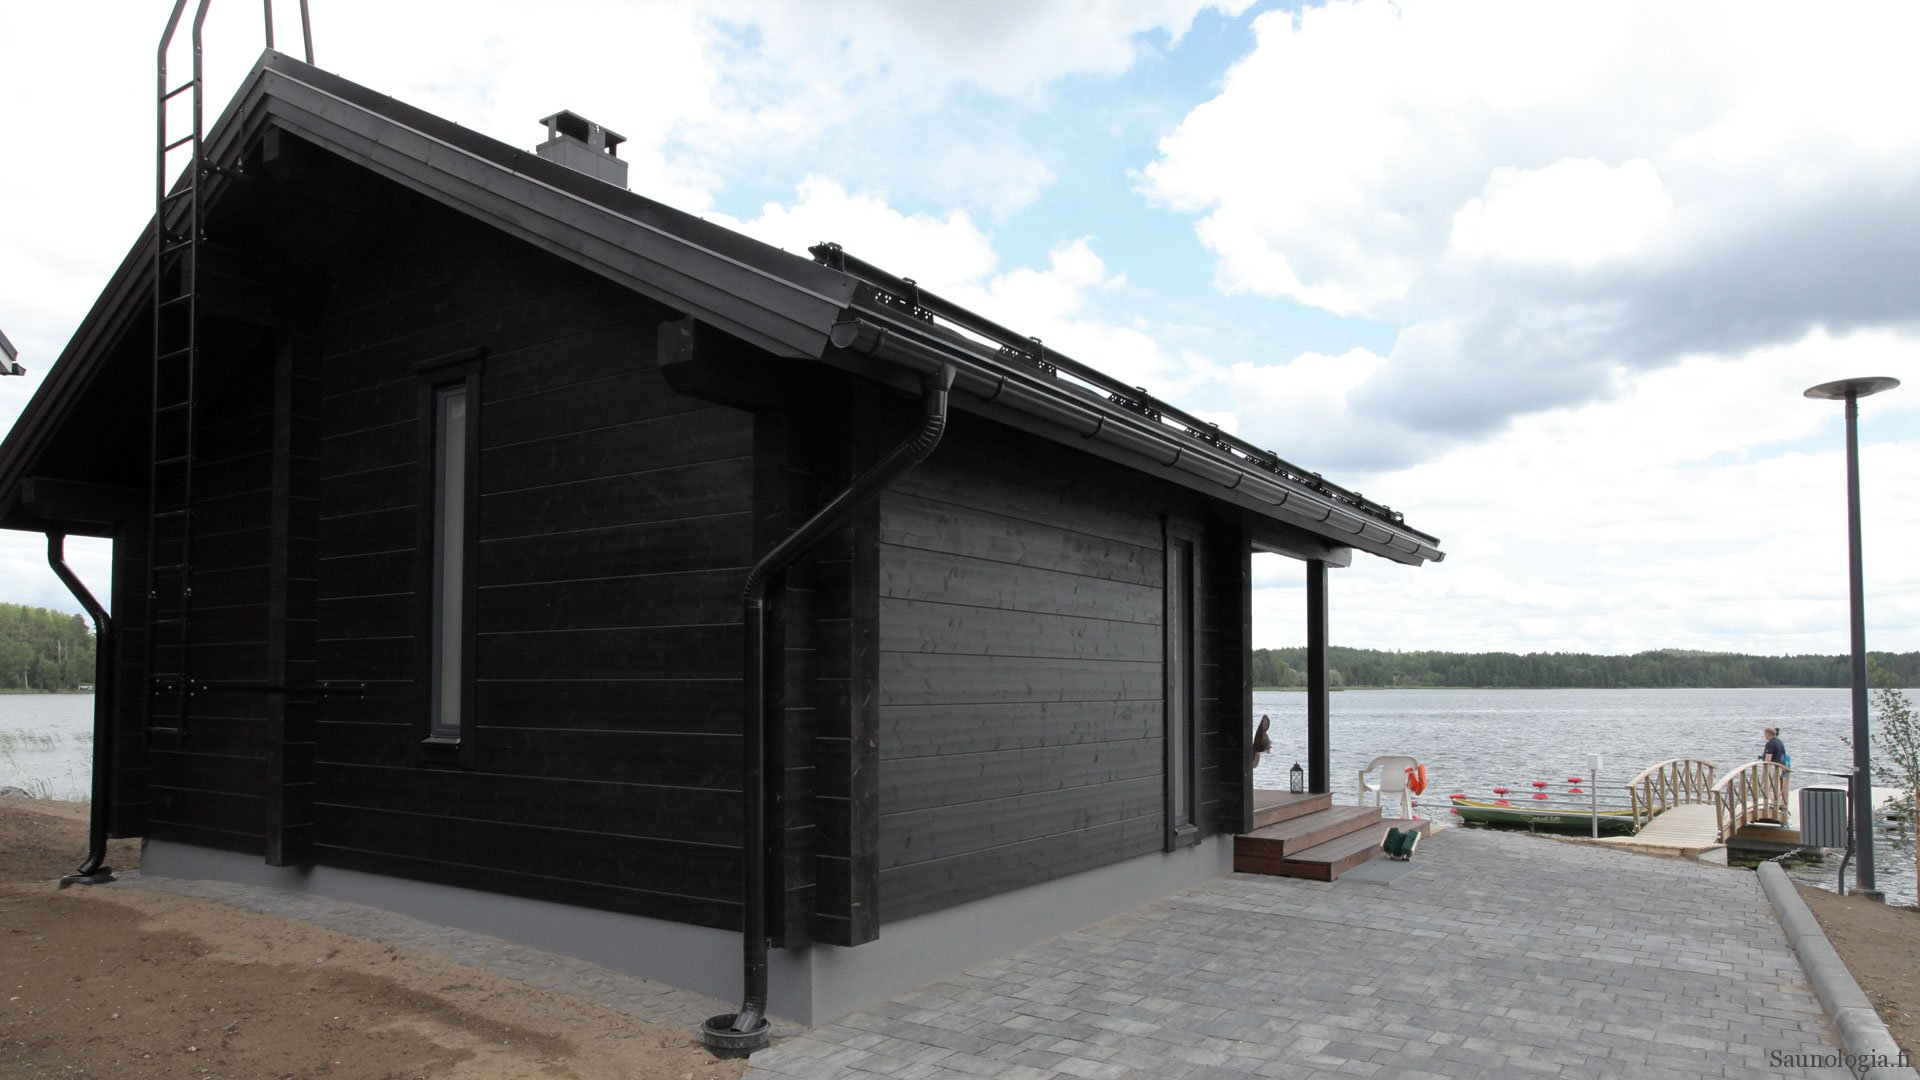 How big should a Finnish sauna be?